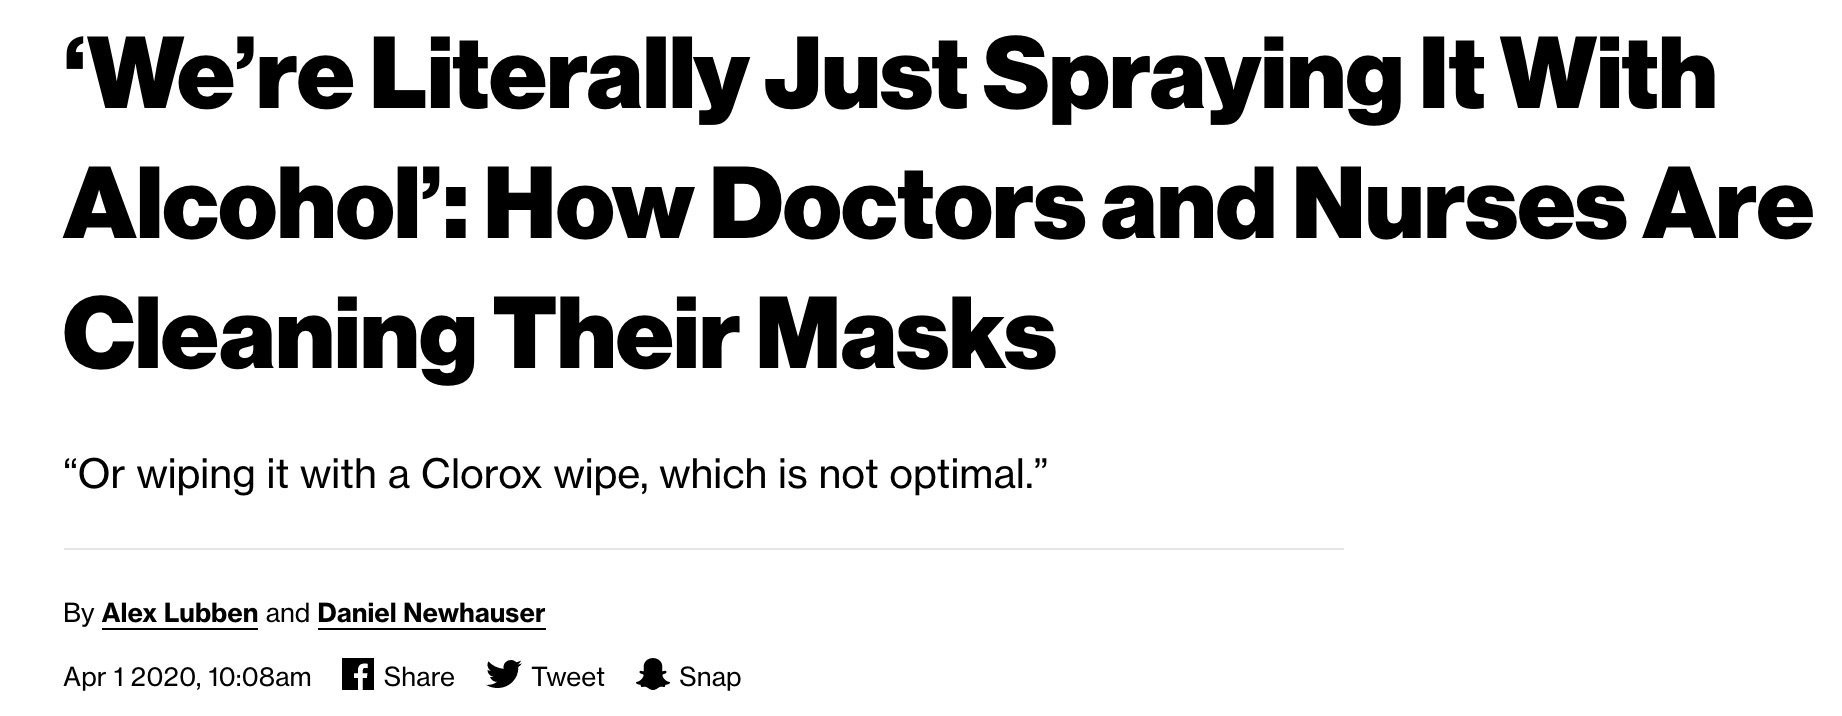 doctors sanitizing masks with alcohol